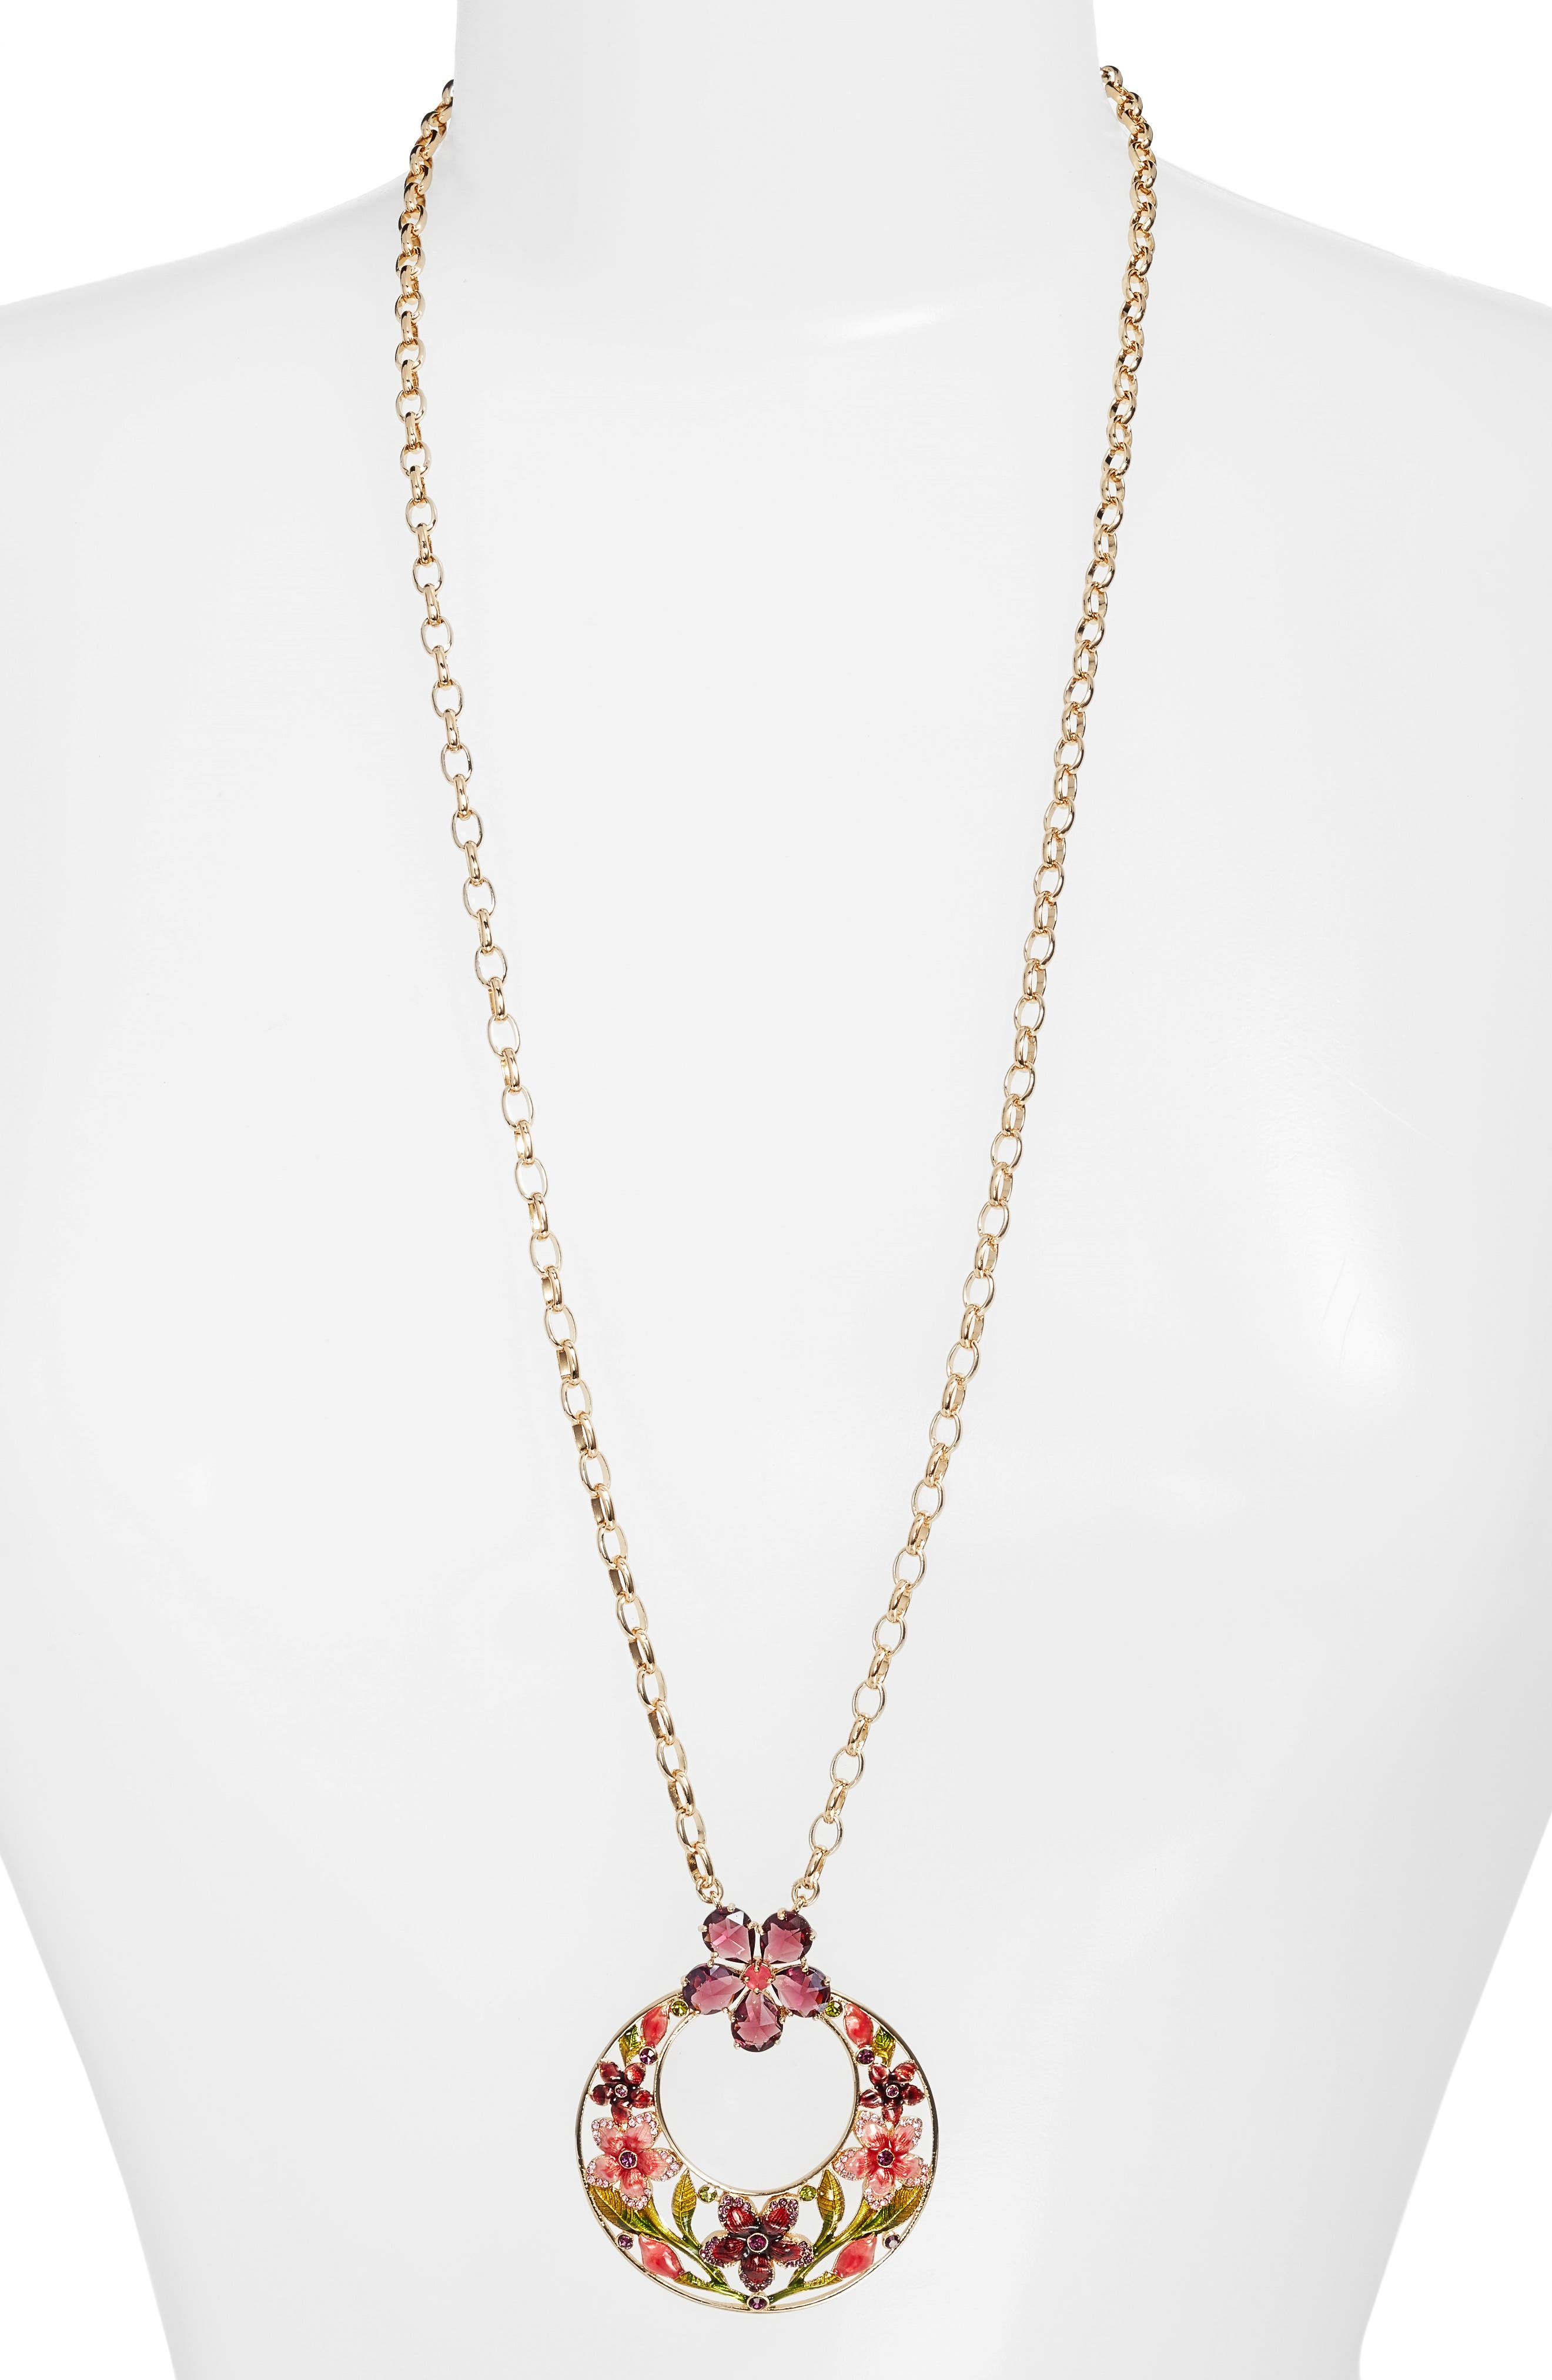 Main Image - kate spade new york in full bloom pendant necklace